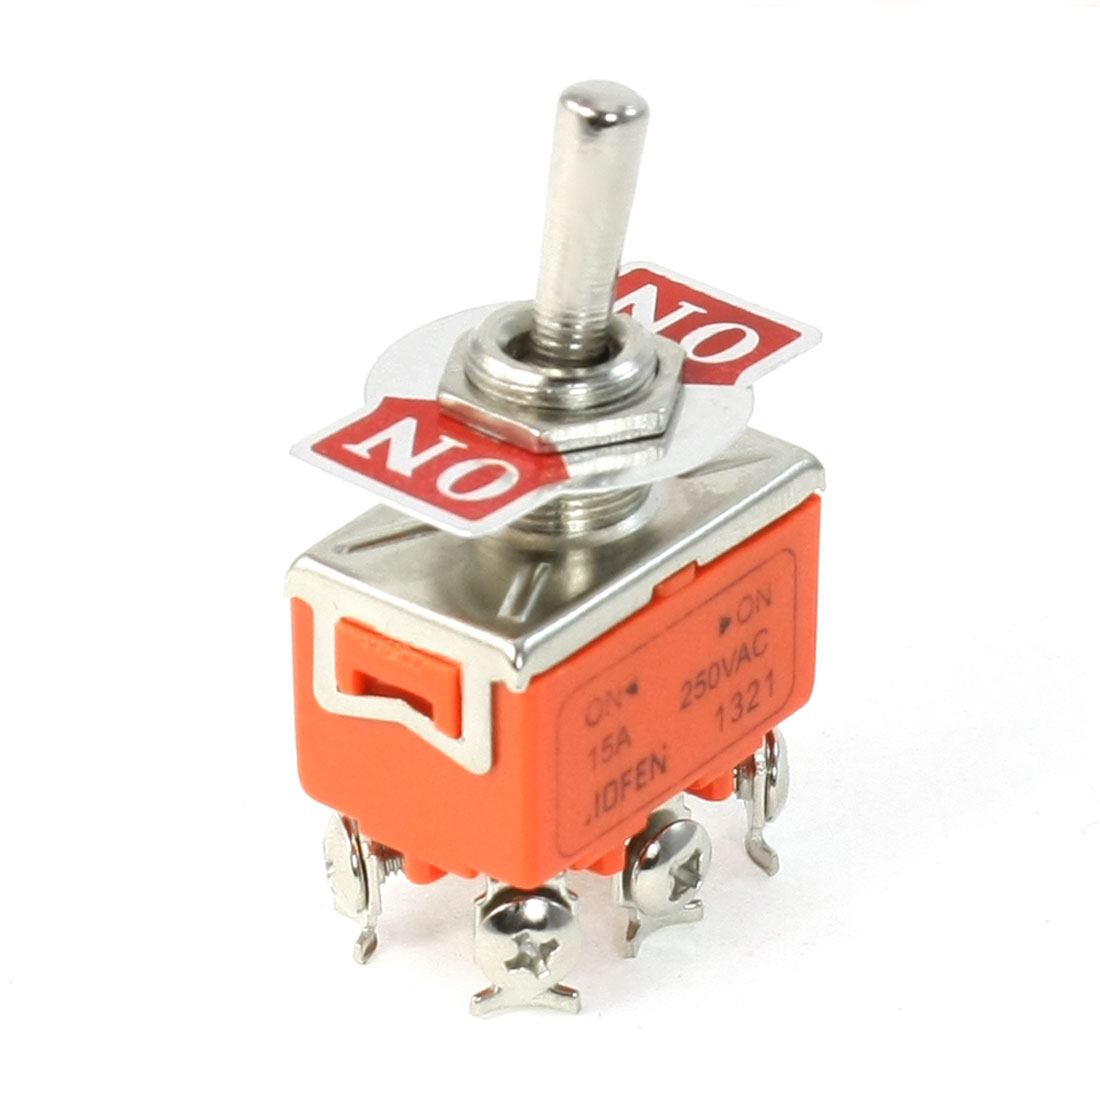 AC 250V 15A On/On 2 Position DPDT 6 Terminals Toggle Switch